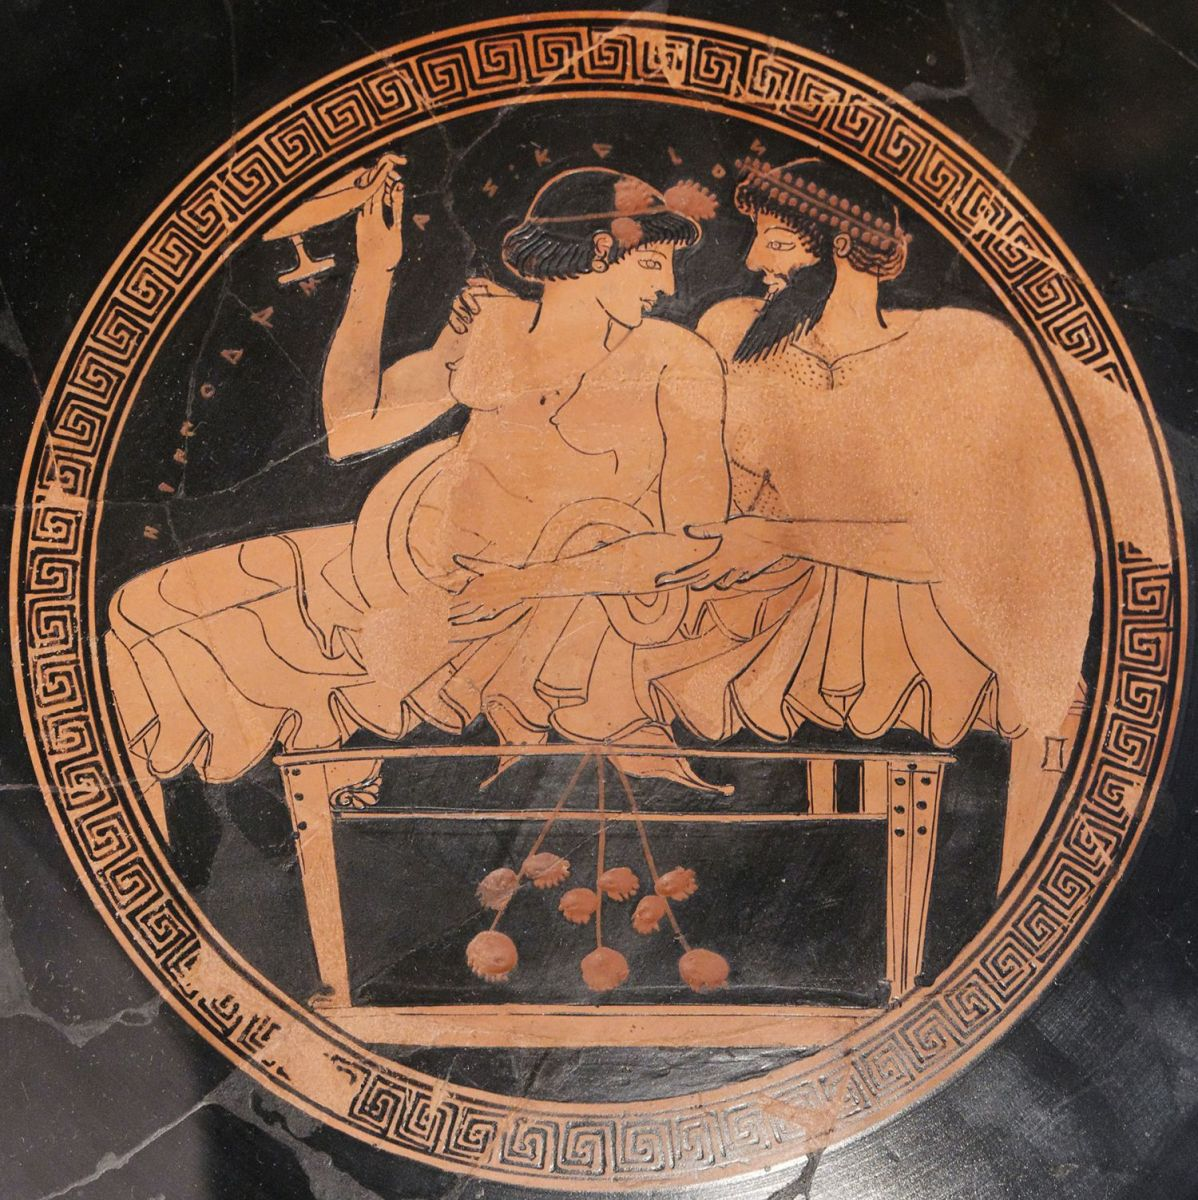 Vases are one of the most important things we have to study gender relations in the era, by their visual depiction.